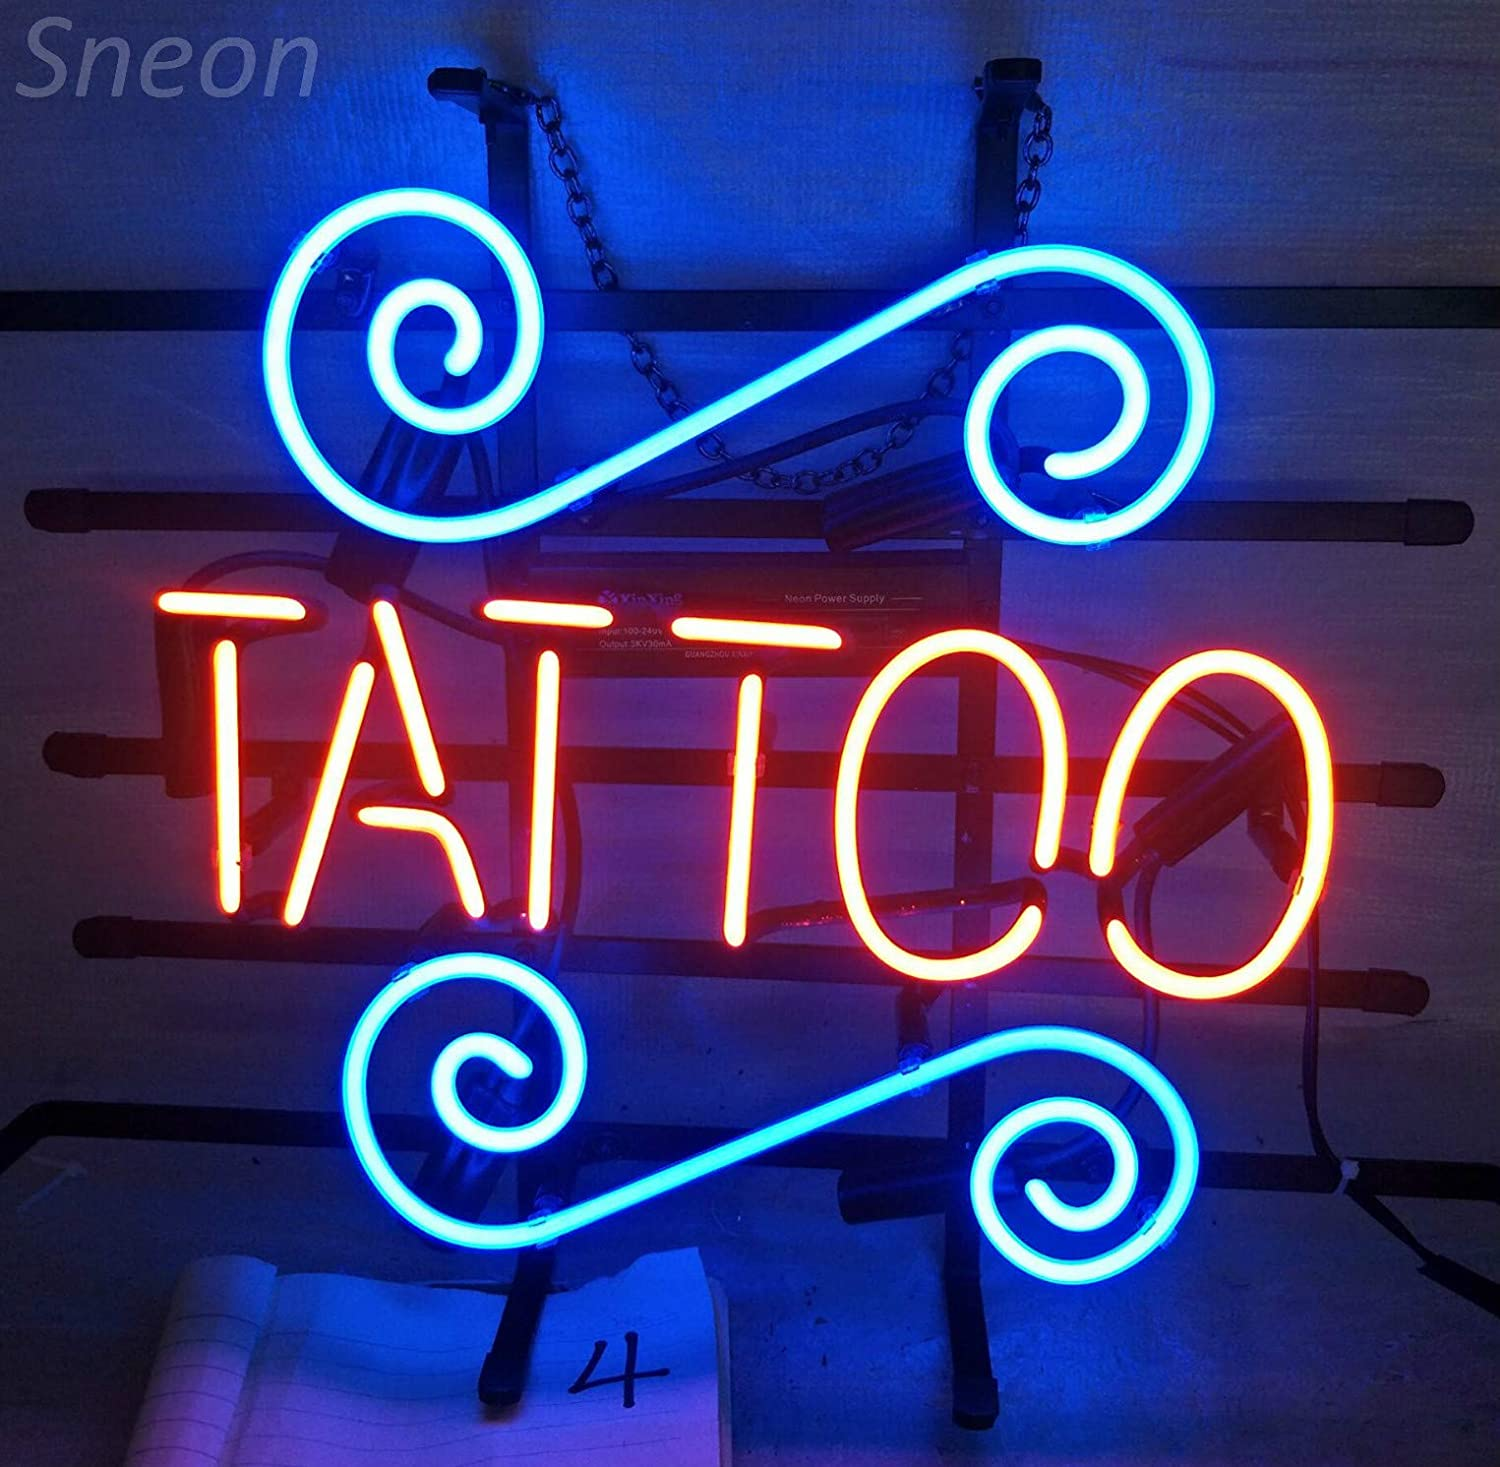 LinC Neon Sign Tattoo Home Decor Light For Bedroom Garage Beer Bar And Nightclub Real Glass Wall Art